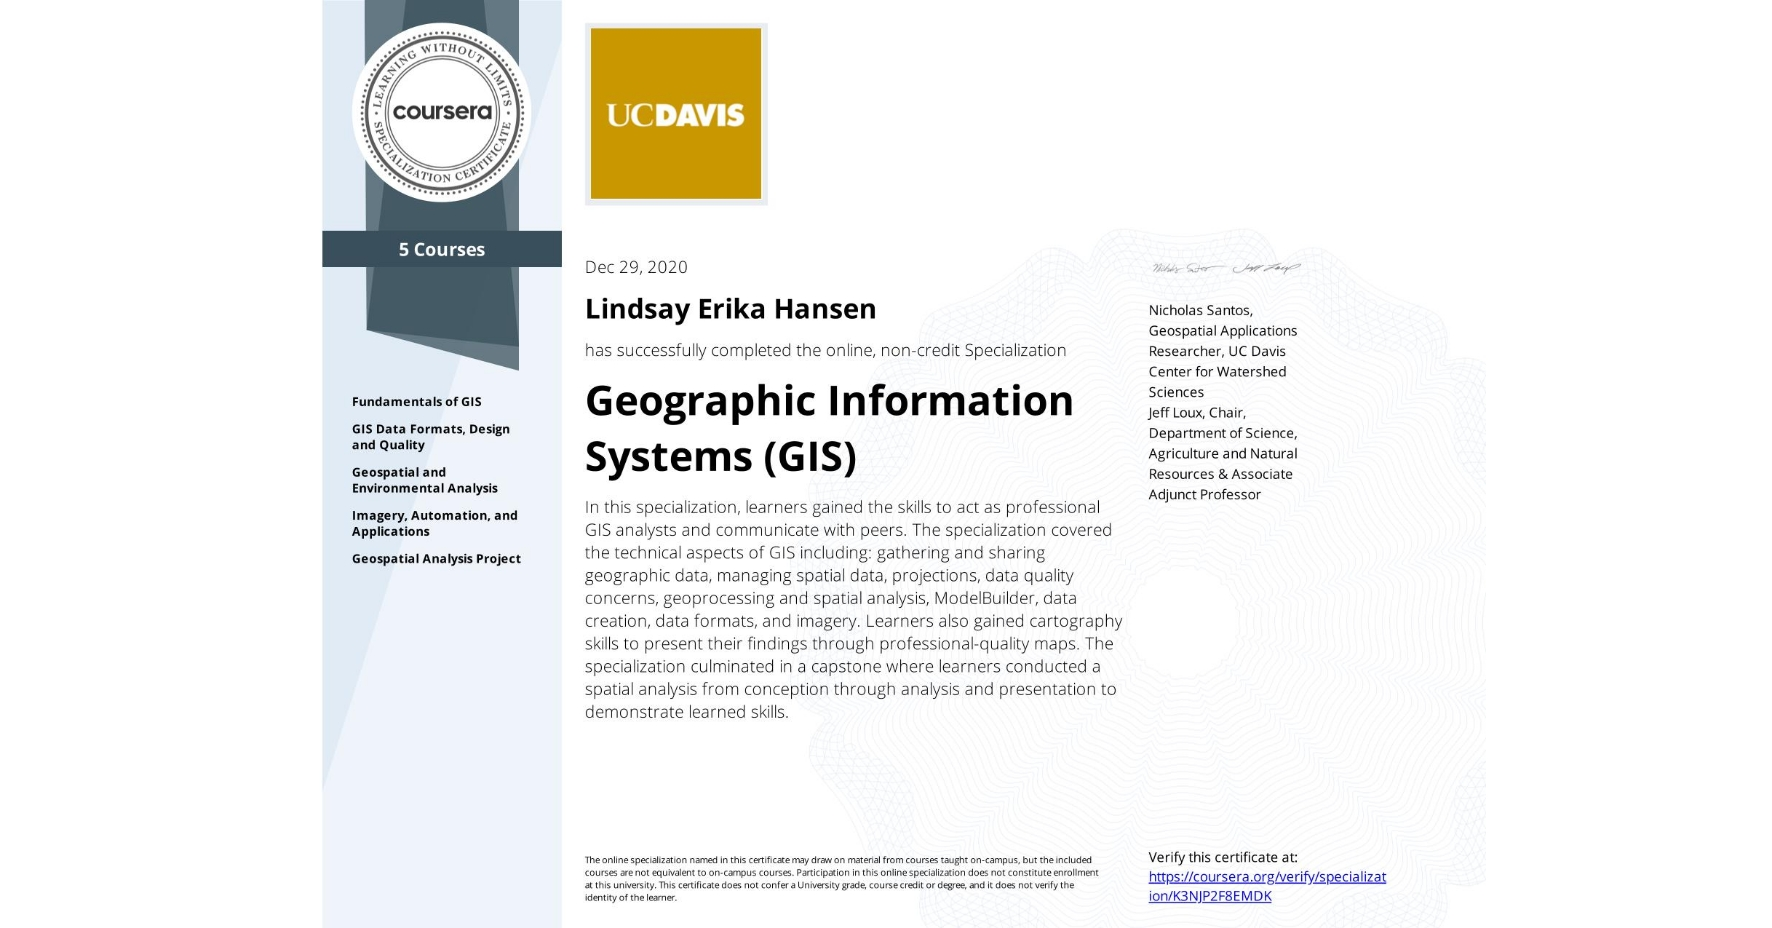 View certificate for Lindsay Erika Hansen, Geographic Information Systems  (GIS), offered through Coursera. In this specialization, learners gained the skills to act as professional GIS analysts and communicate with peers. The specialization covered the technical aspects of GIS including: gathering and sharing geographic data, managing spatial data, projections, data quality concerns, geoprocessing and spatial analysis, ModelBuilder, data creation, data formats, and imagery. Learners also gained cartography skills to present their findings through professional-quality maps. The specialization culminated in a capstone where learners conducted a spatial analysis from conception through analysis and presentation to demonstrate learned skills.